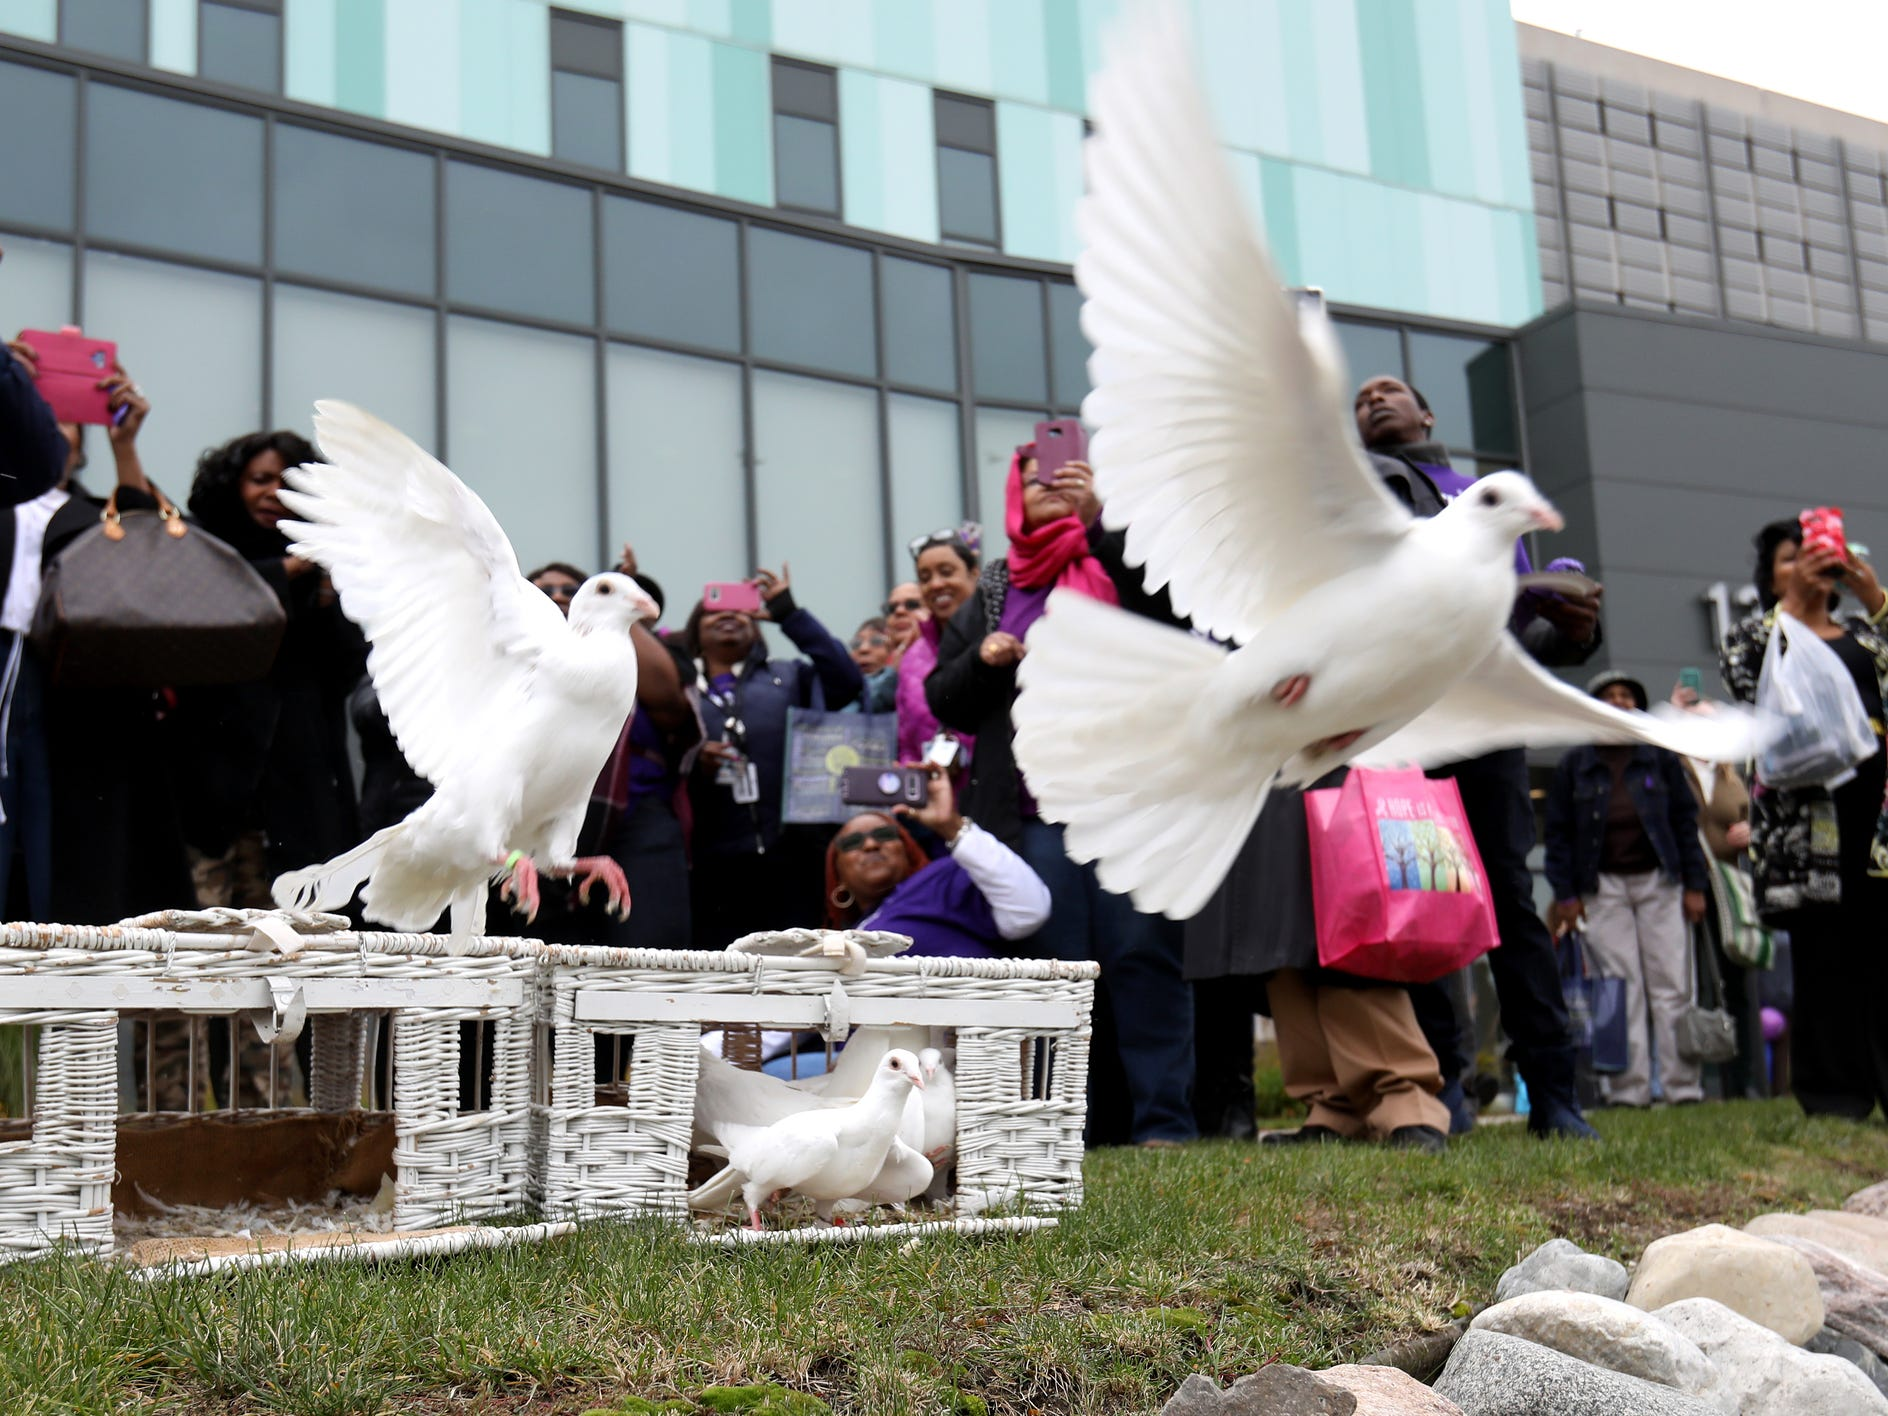 White doves are release after a domestic violence seminar held at the Detroit Public Safety Headquarters in Detroit on Friday, October 26, 2018.